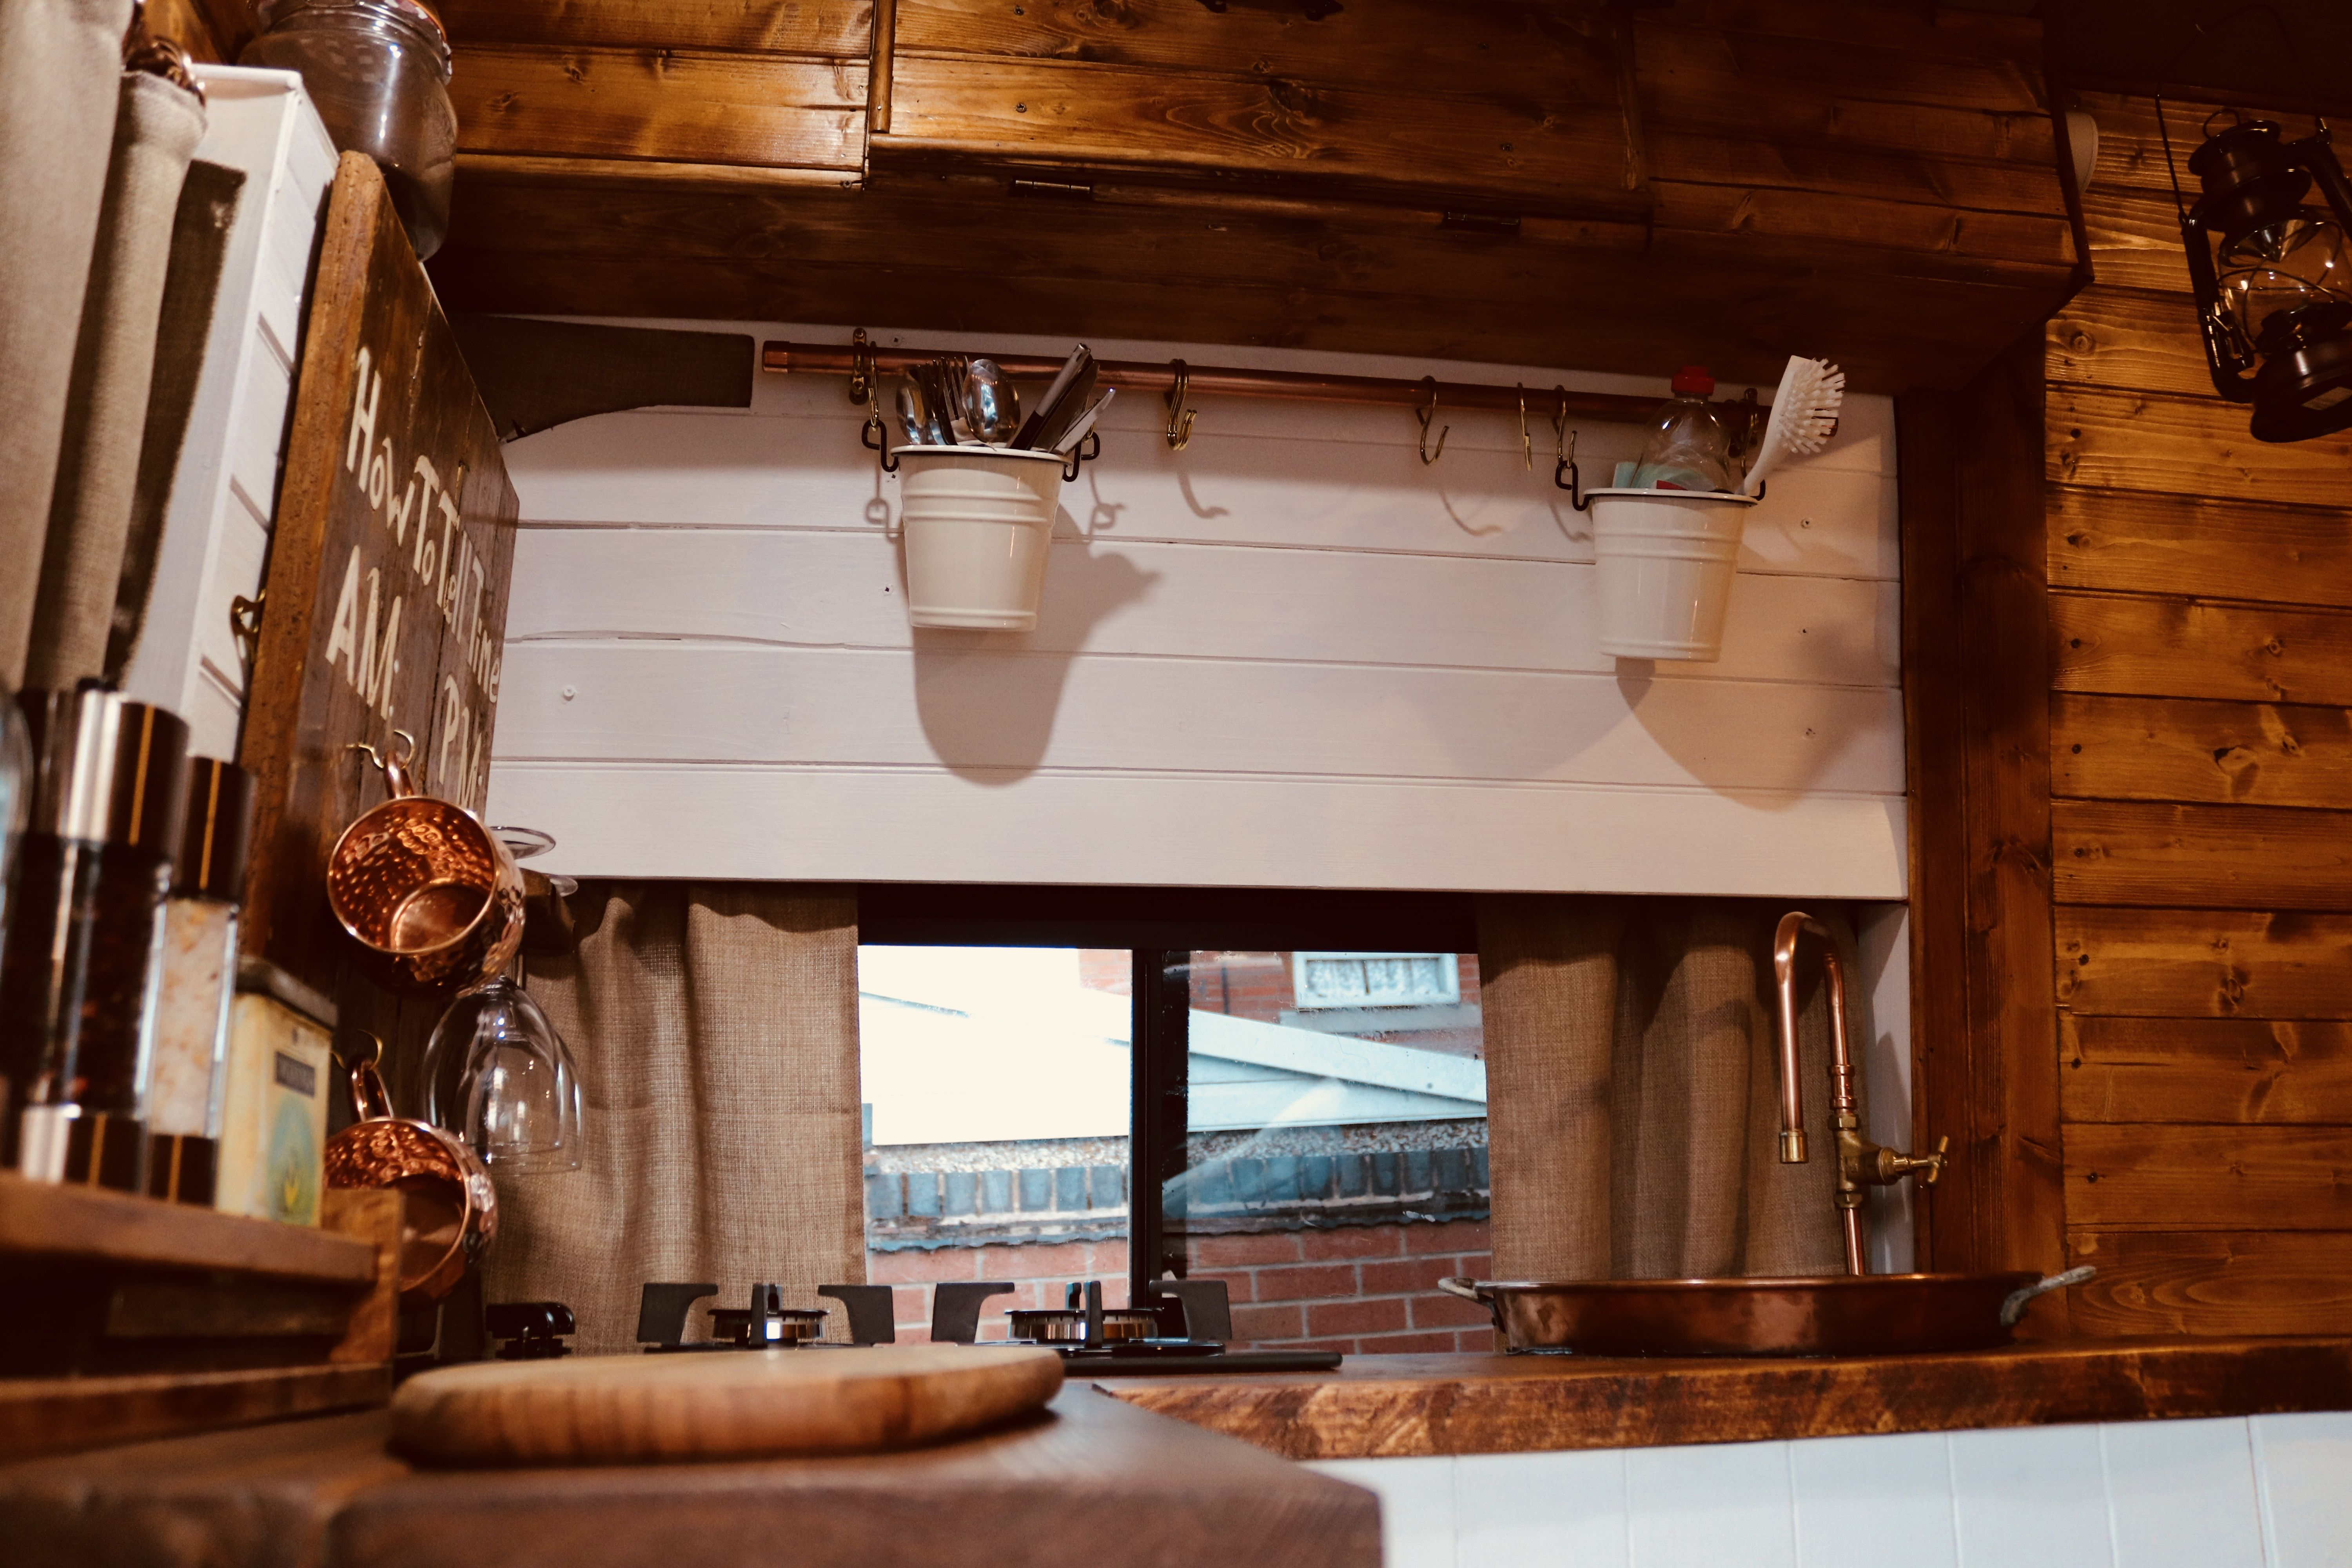 Pin by Sarah Jane White on Vanlife Cabin style, Toilet